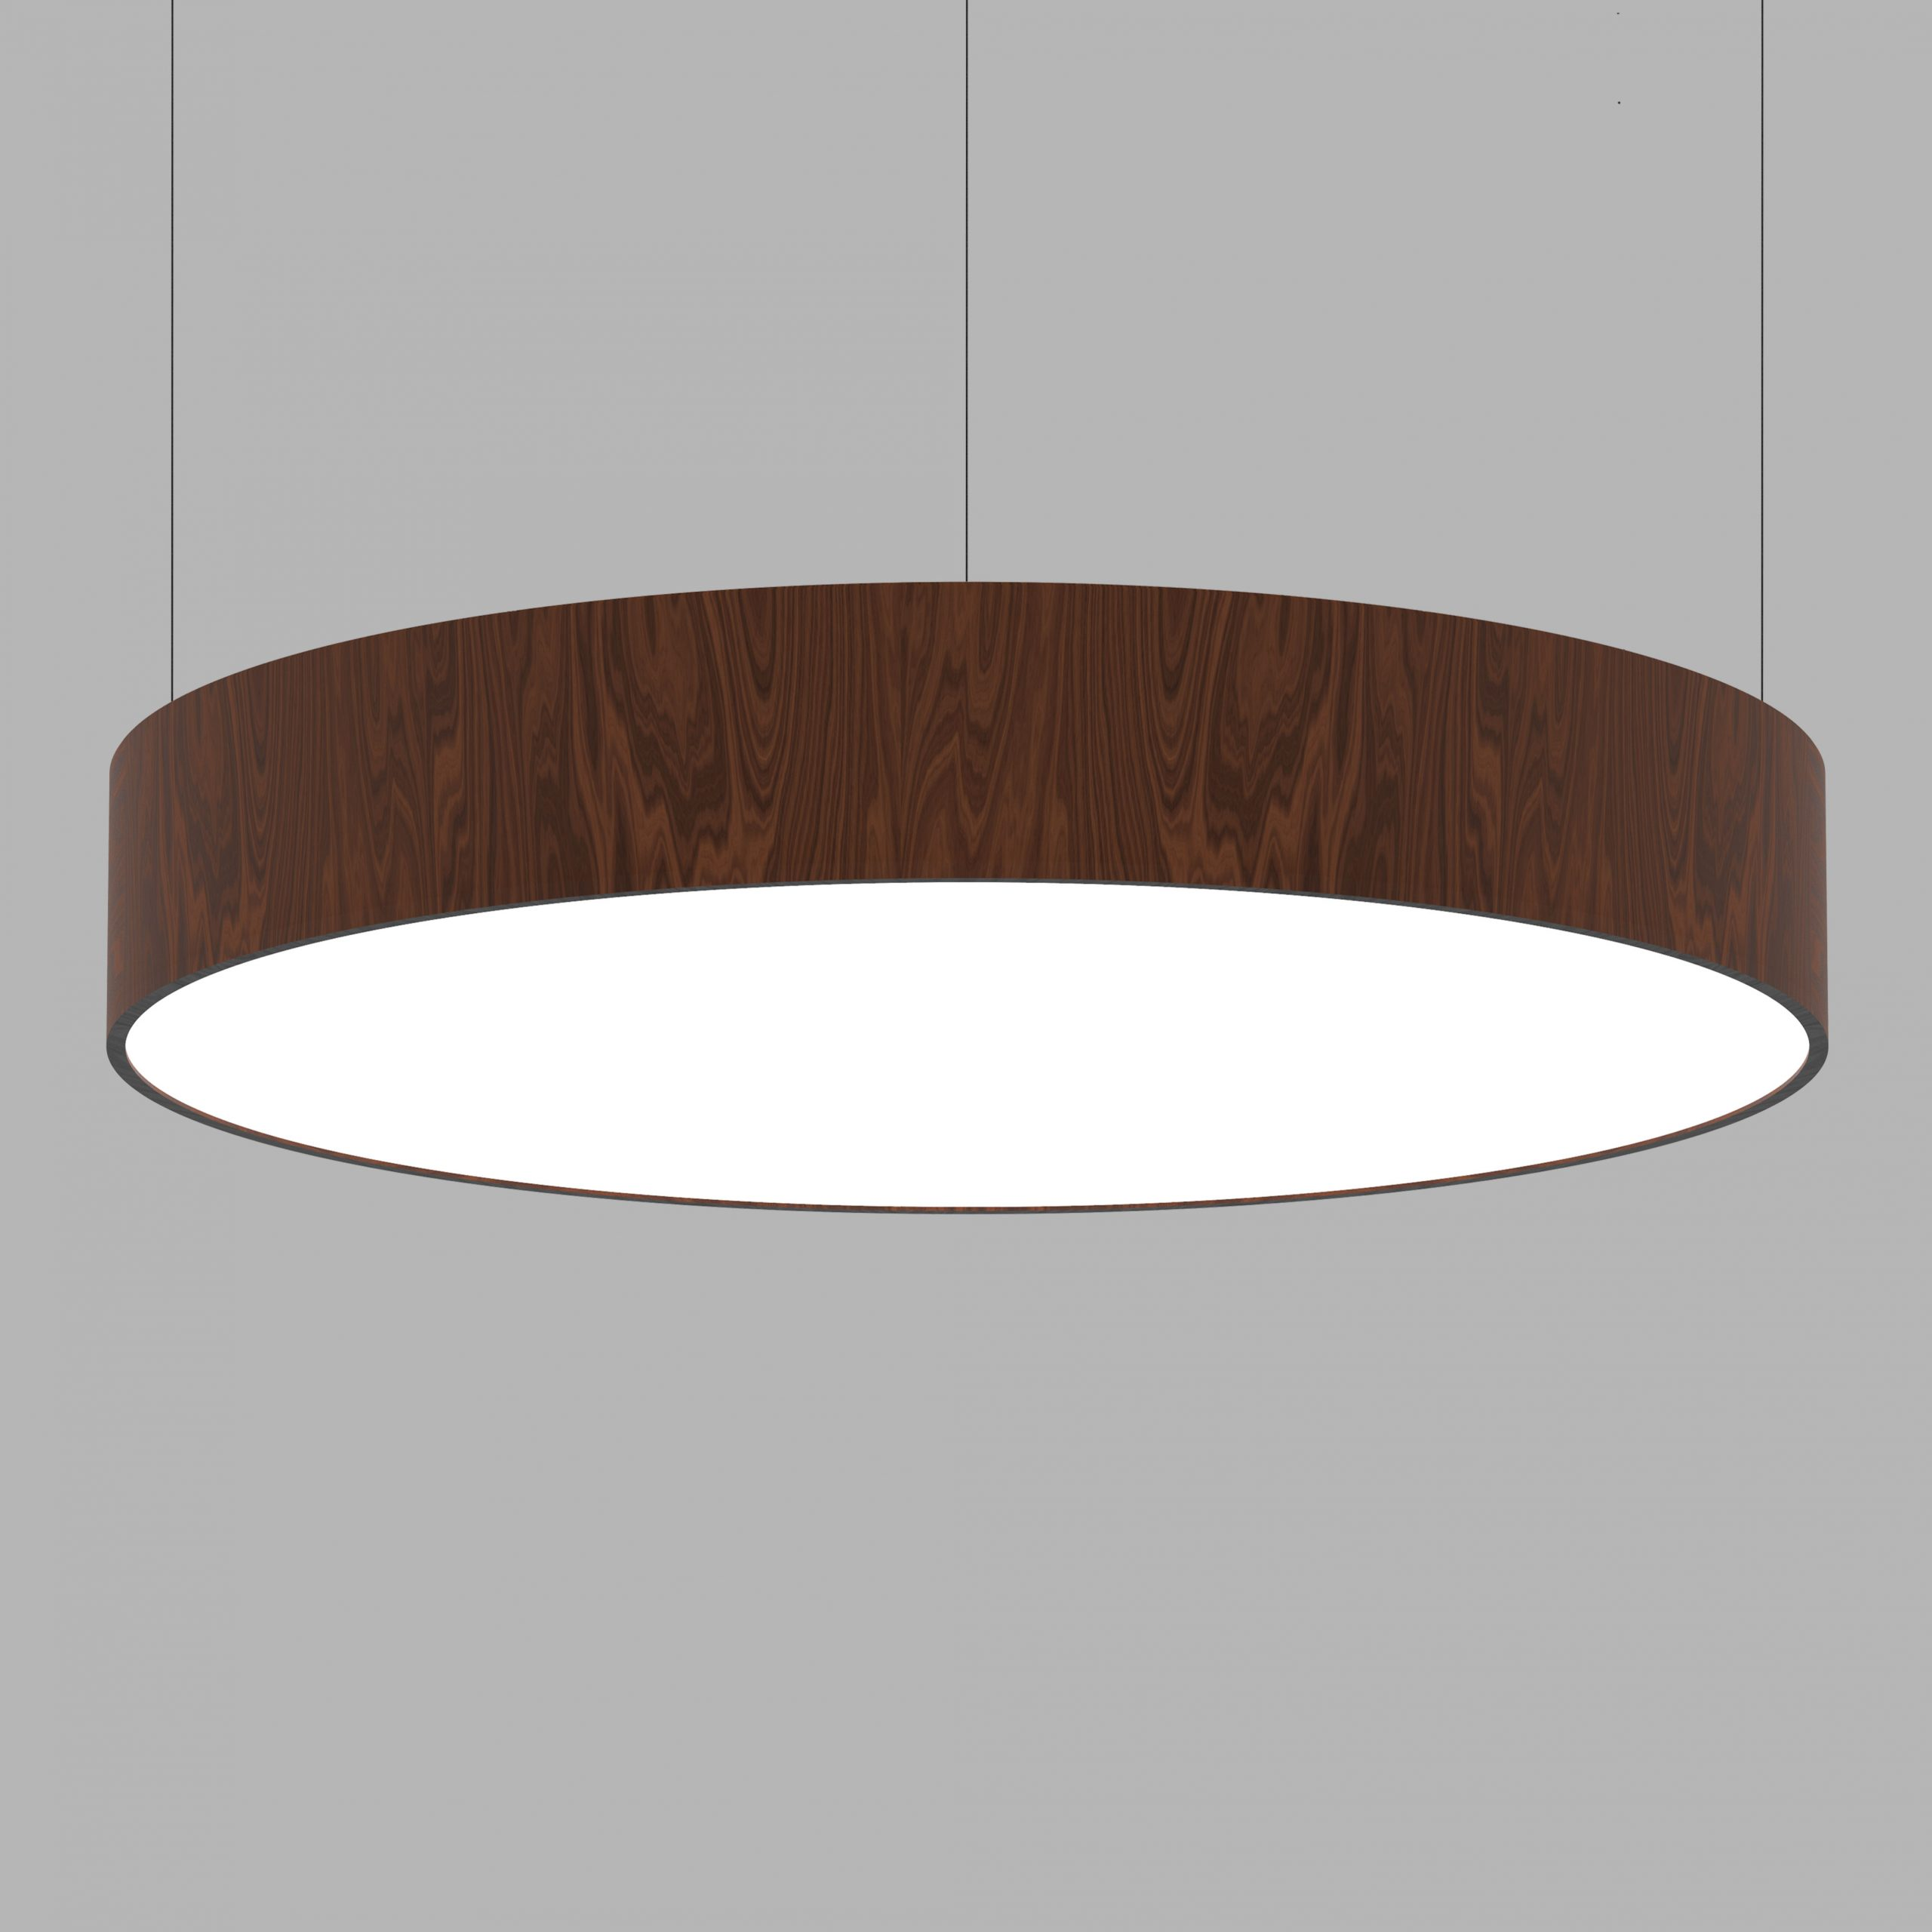 CIRCULAR-PLATE-SUSPENDED